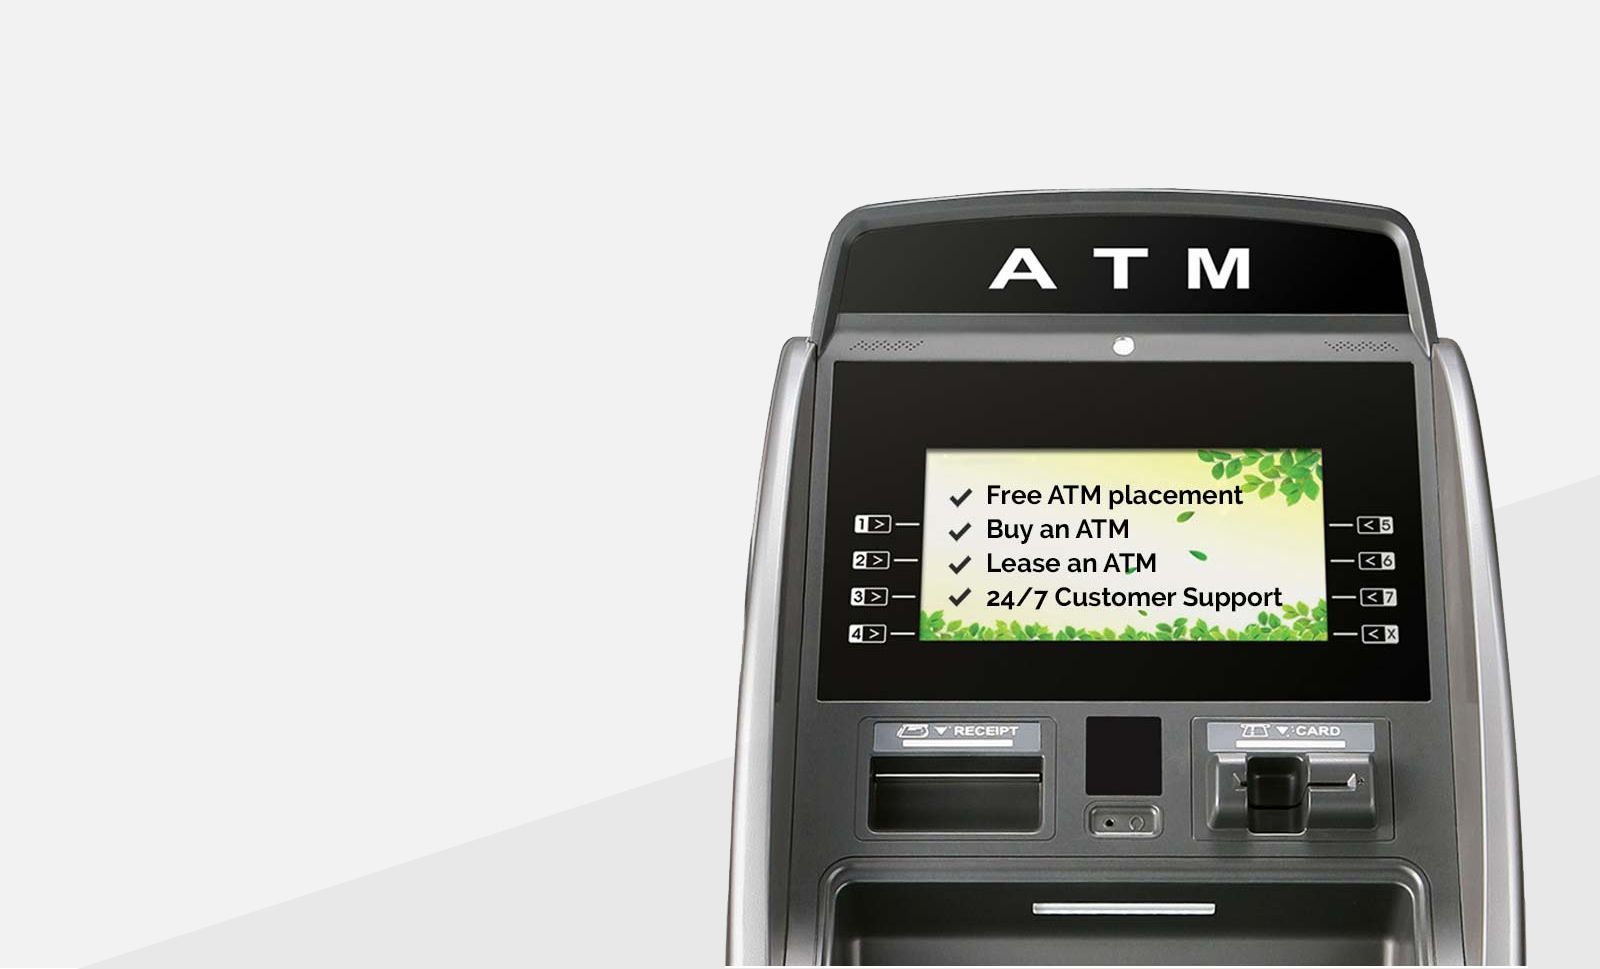 Pin on atms